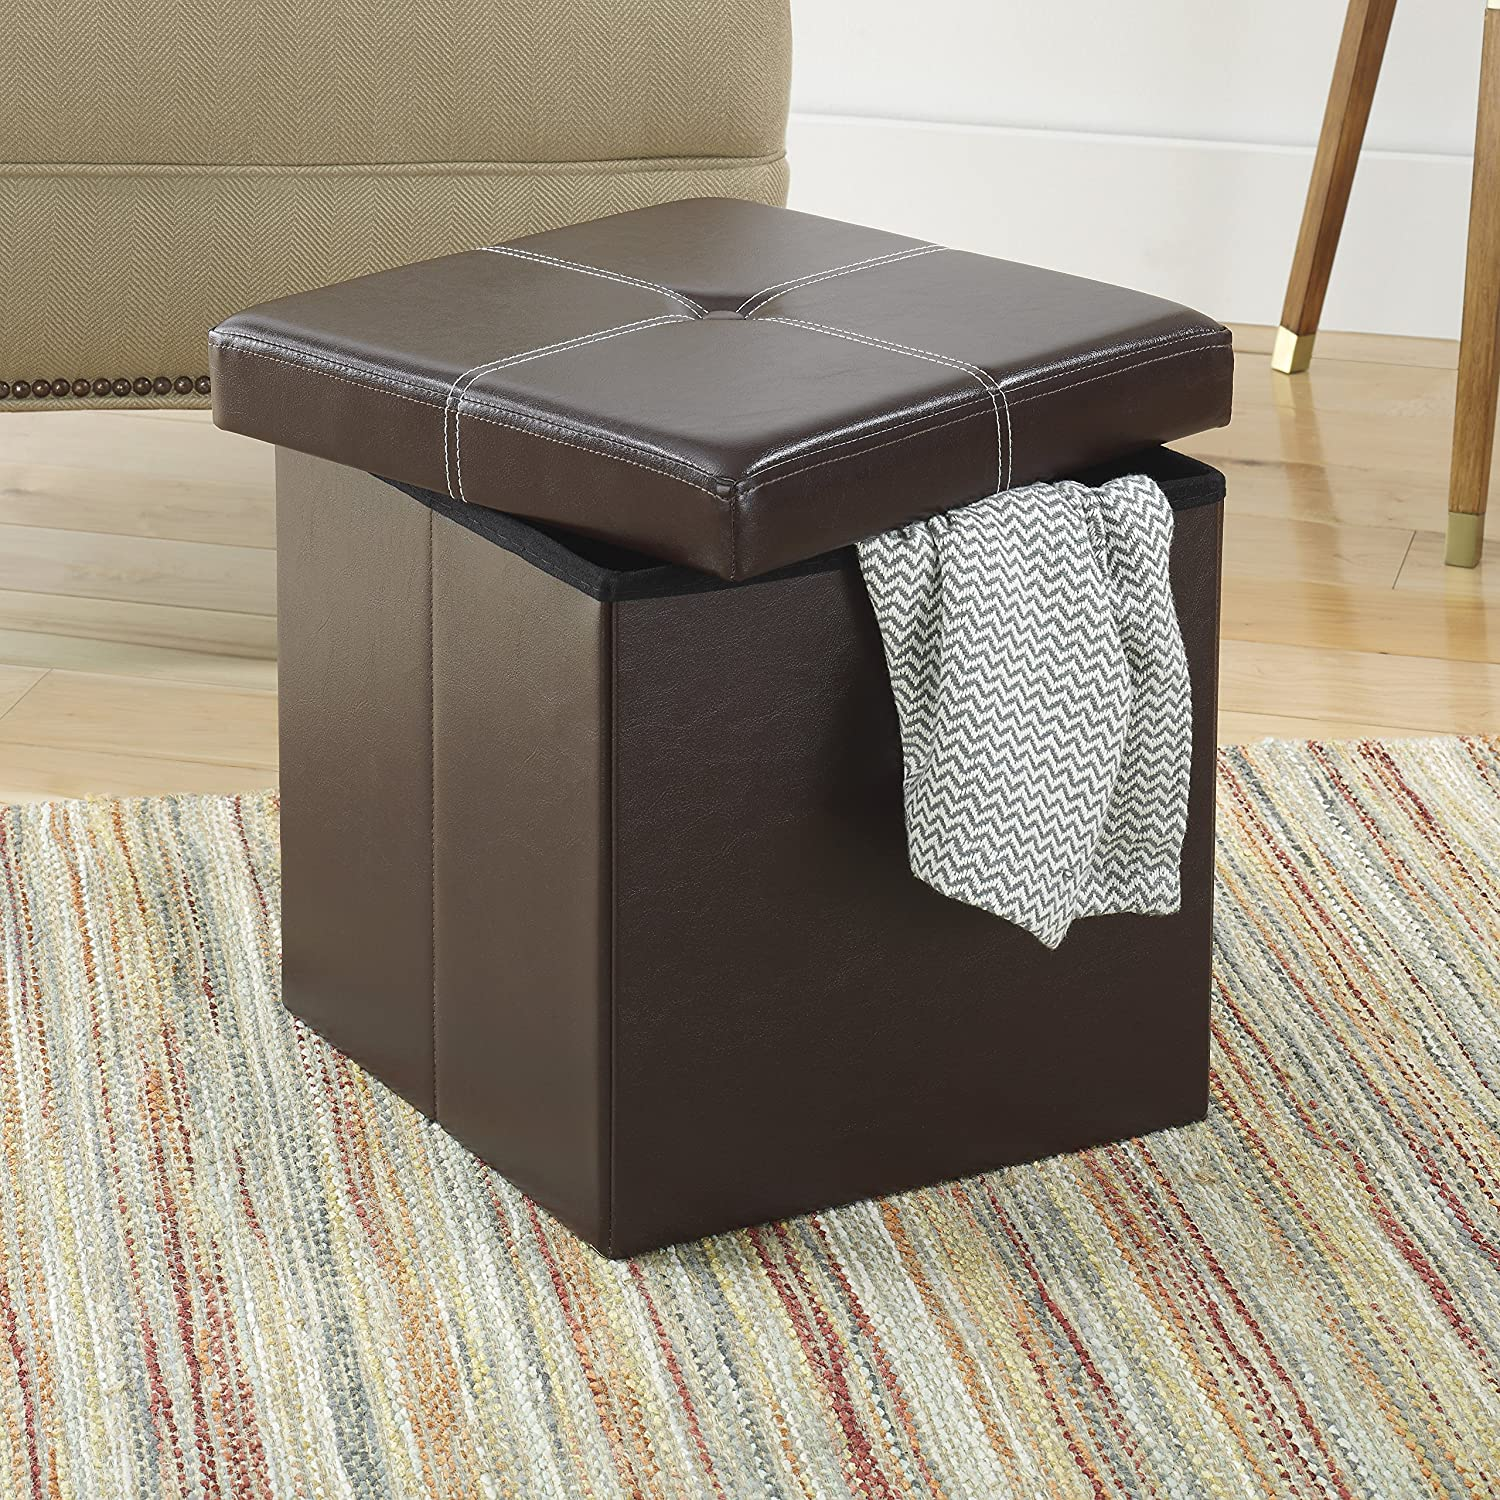 Brown 6919-8258-BRN Whitmor Faux Leather Collapsible Ottoman Storage